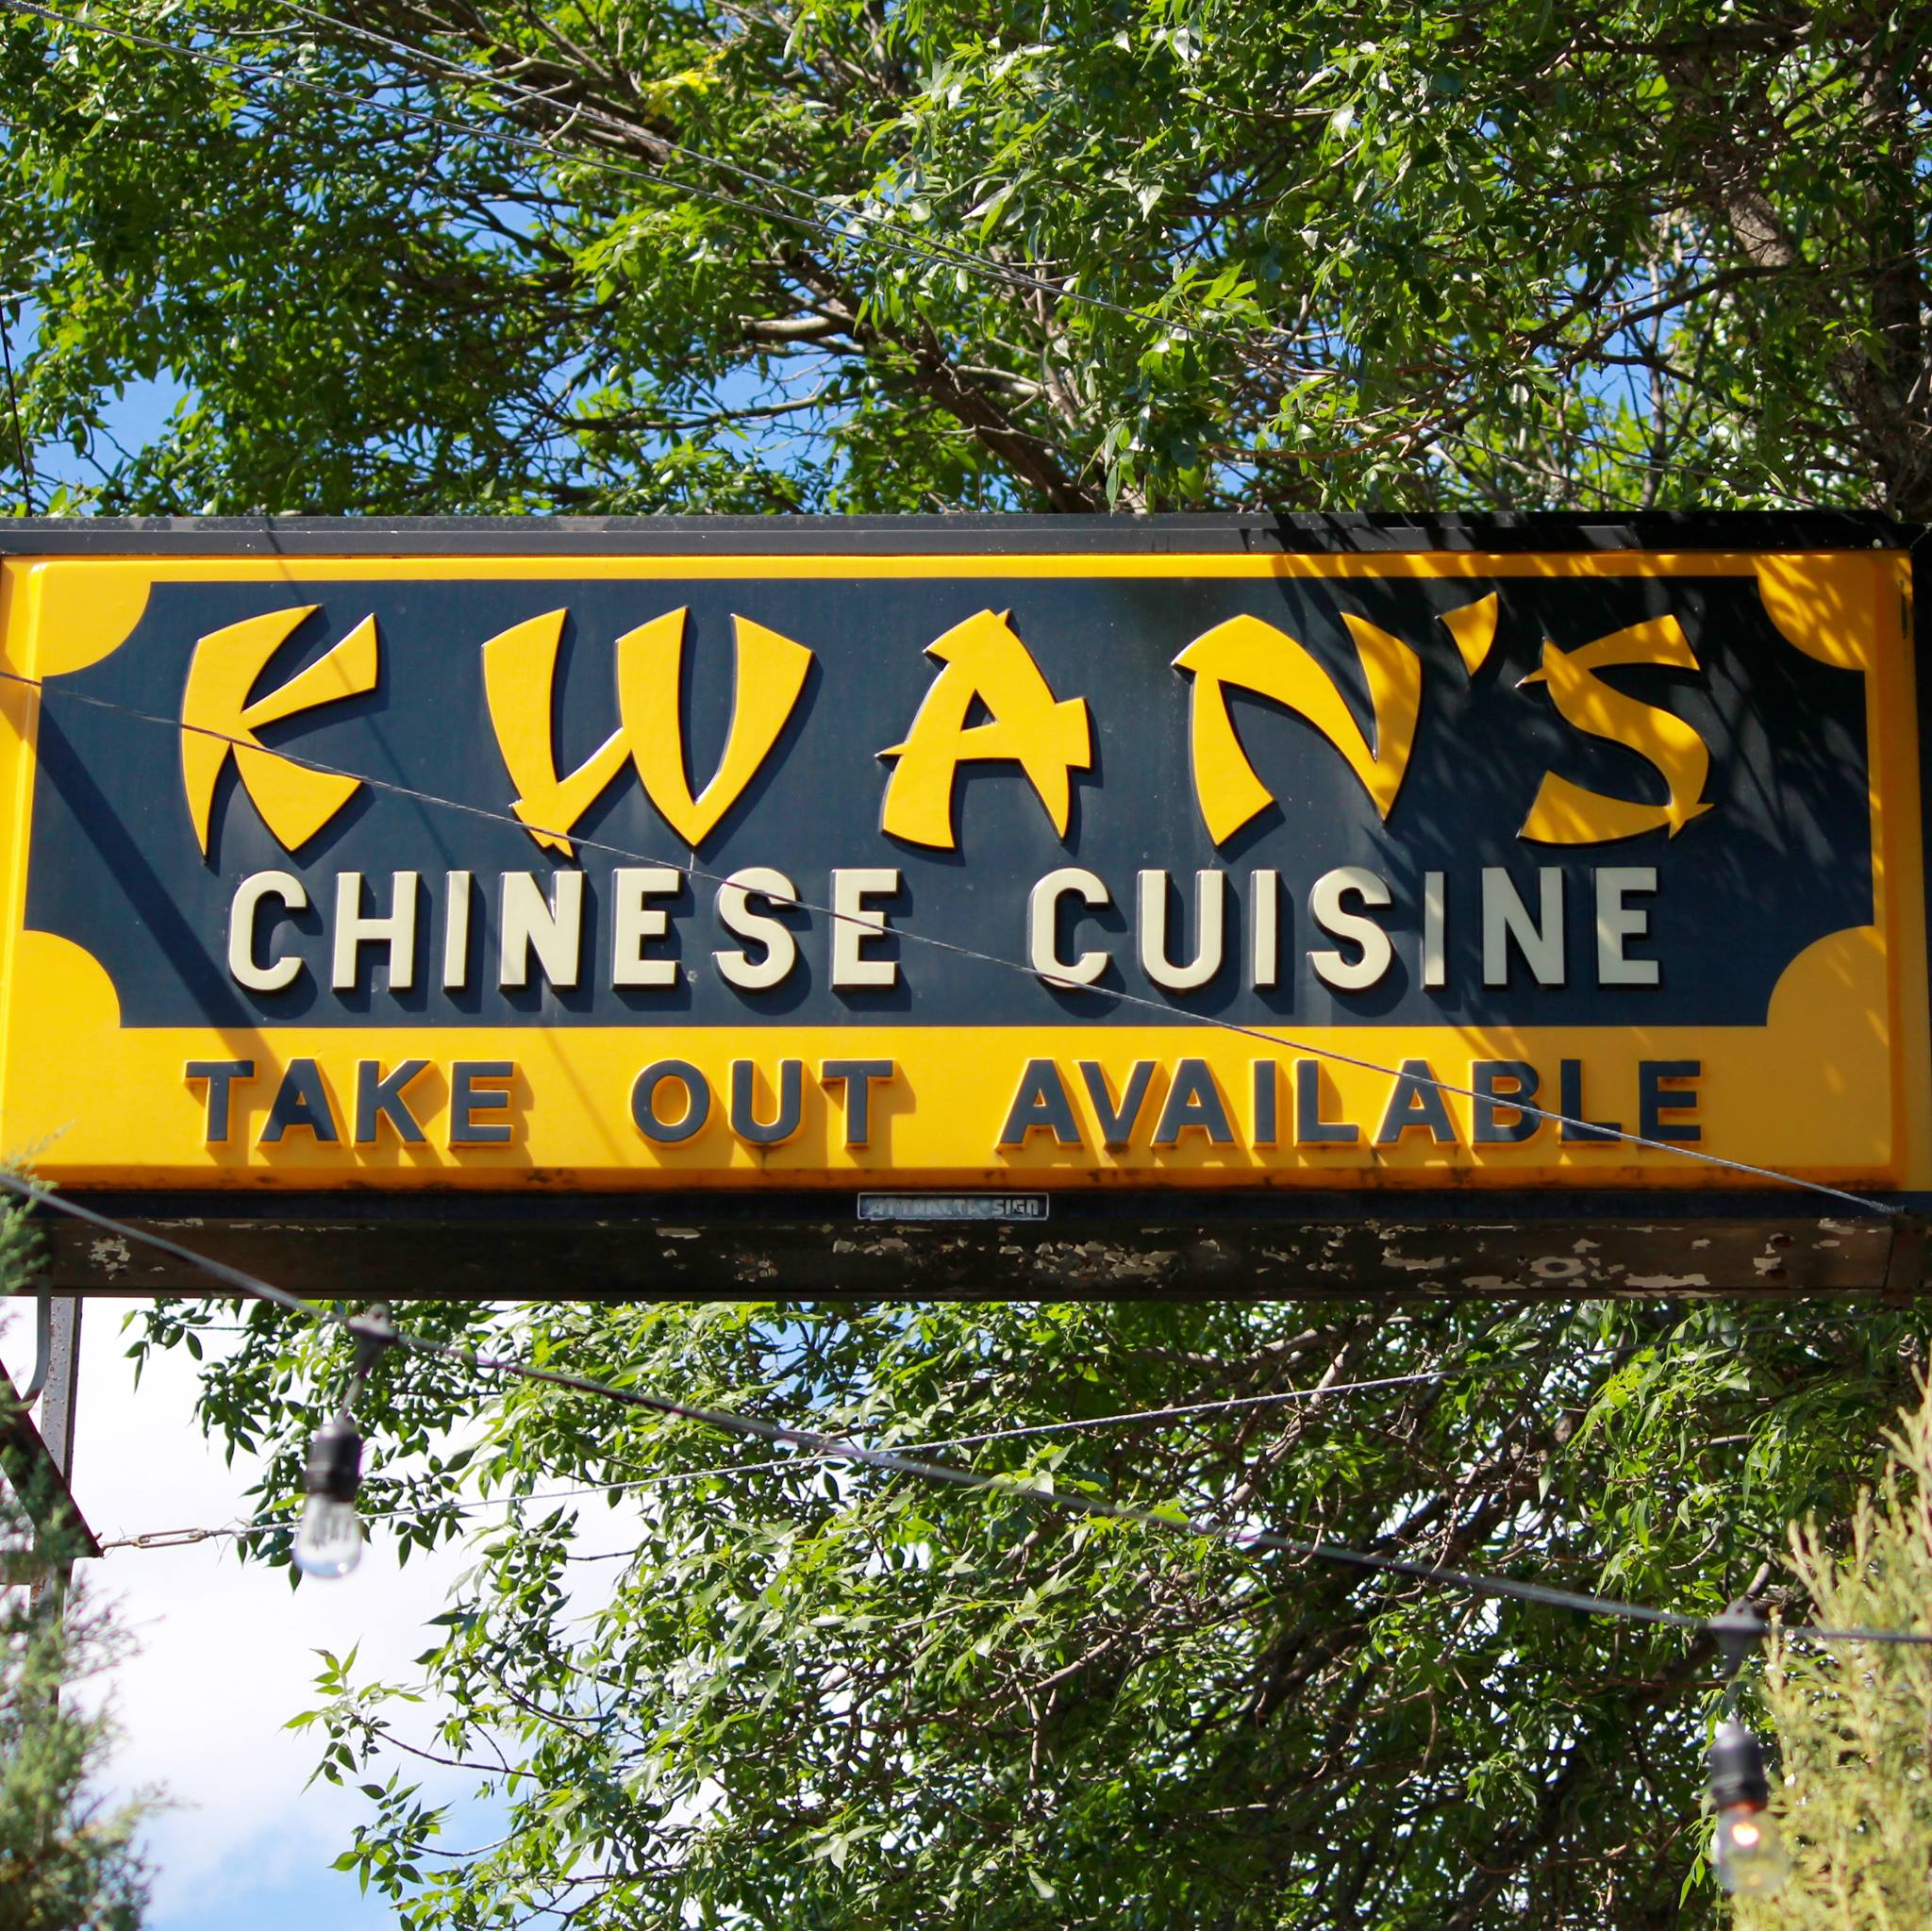 about us - For over 30 years, Kwan's has been a neighborhood staple for quick, classic Chinese food. We are a traditionally owned Chinese restaurant with a fresh new face, seeking to bring new ideas to the table while preserving our traditional classics.